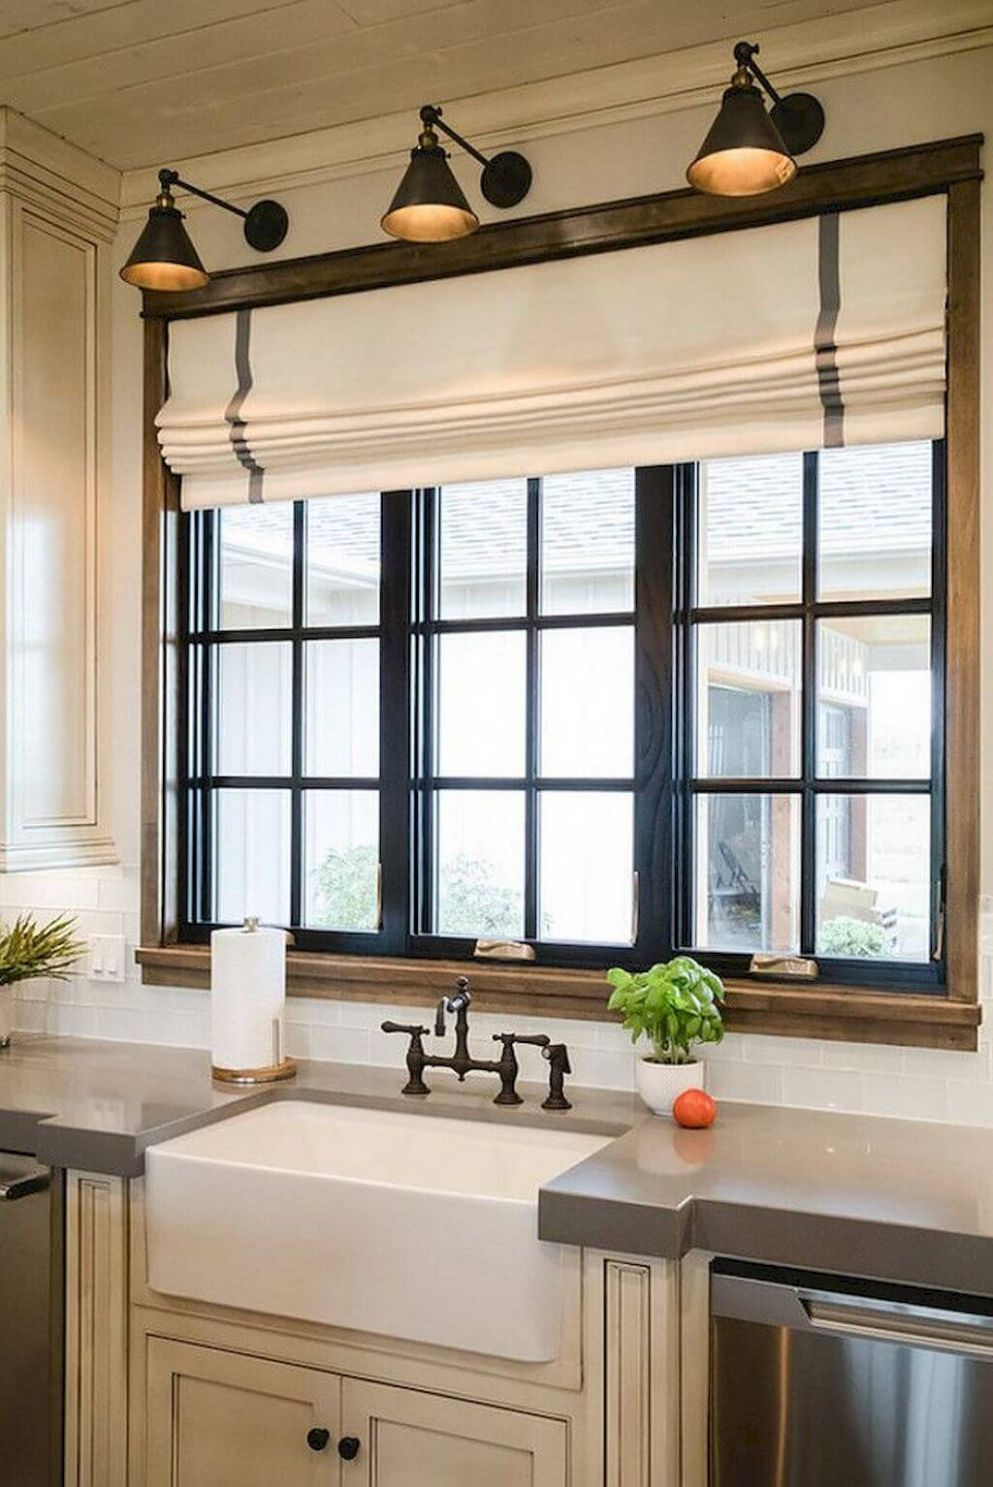 12 Best Farmhouse Window Treatment Ideas and Designs for 12 - window dressing ideas kitchen